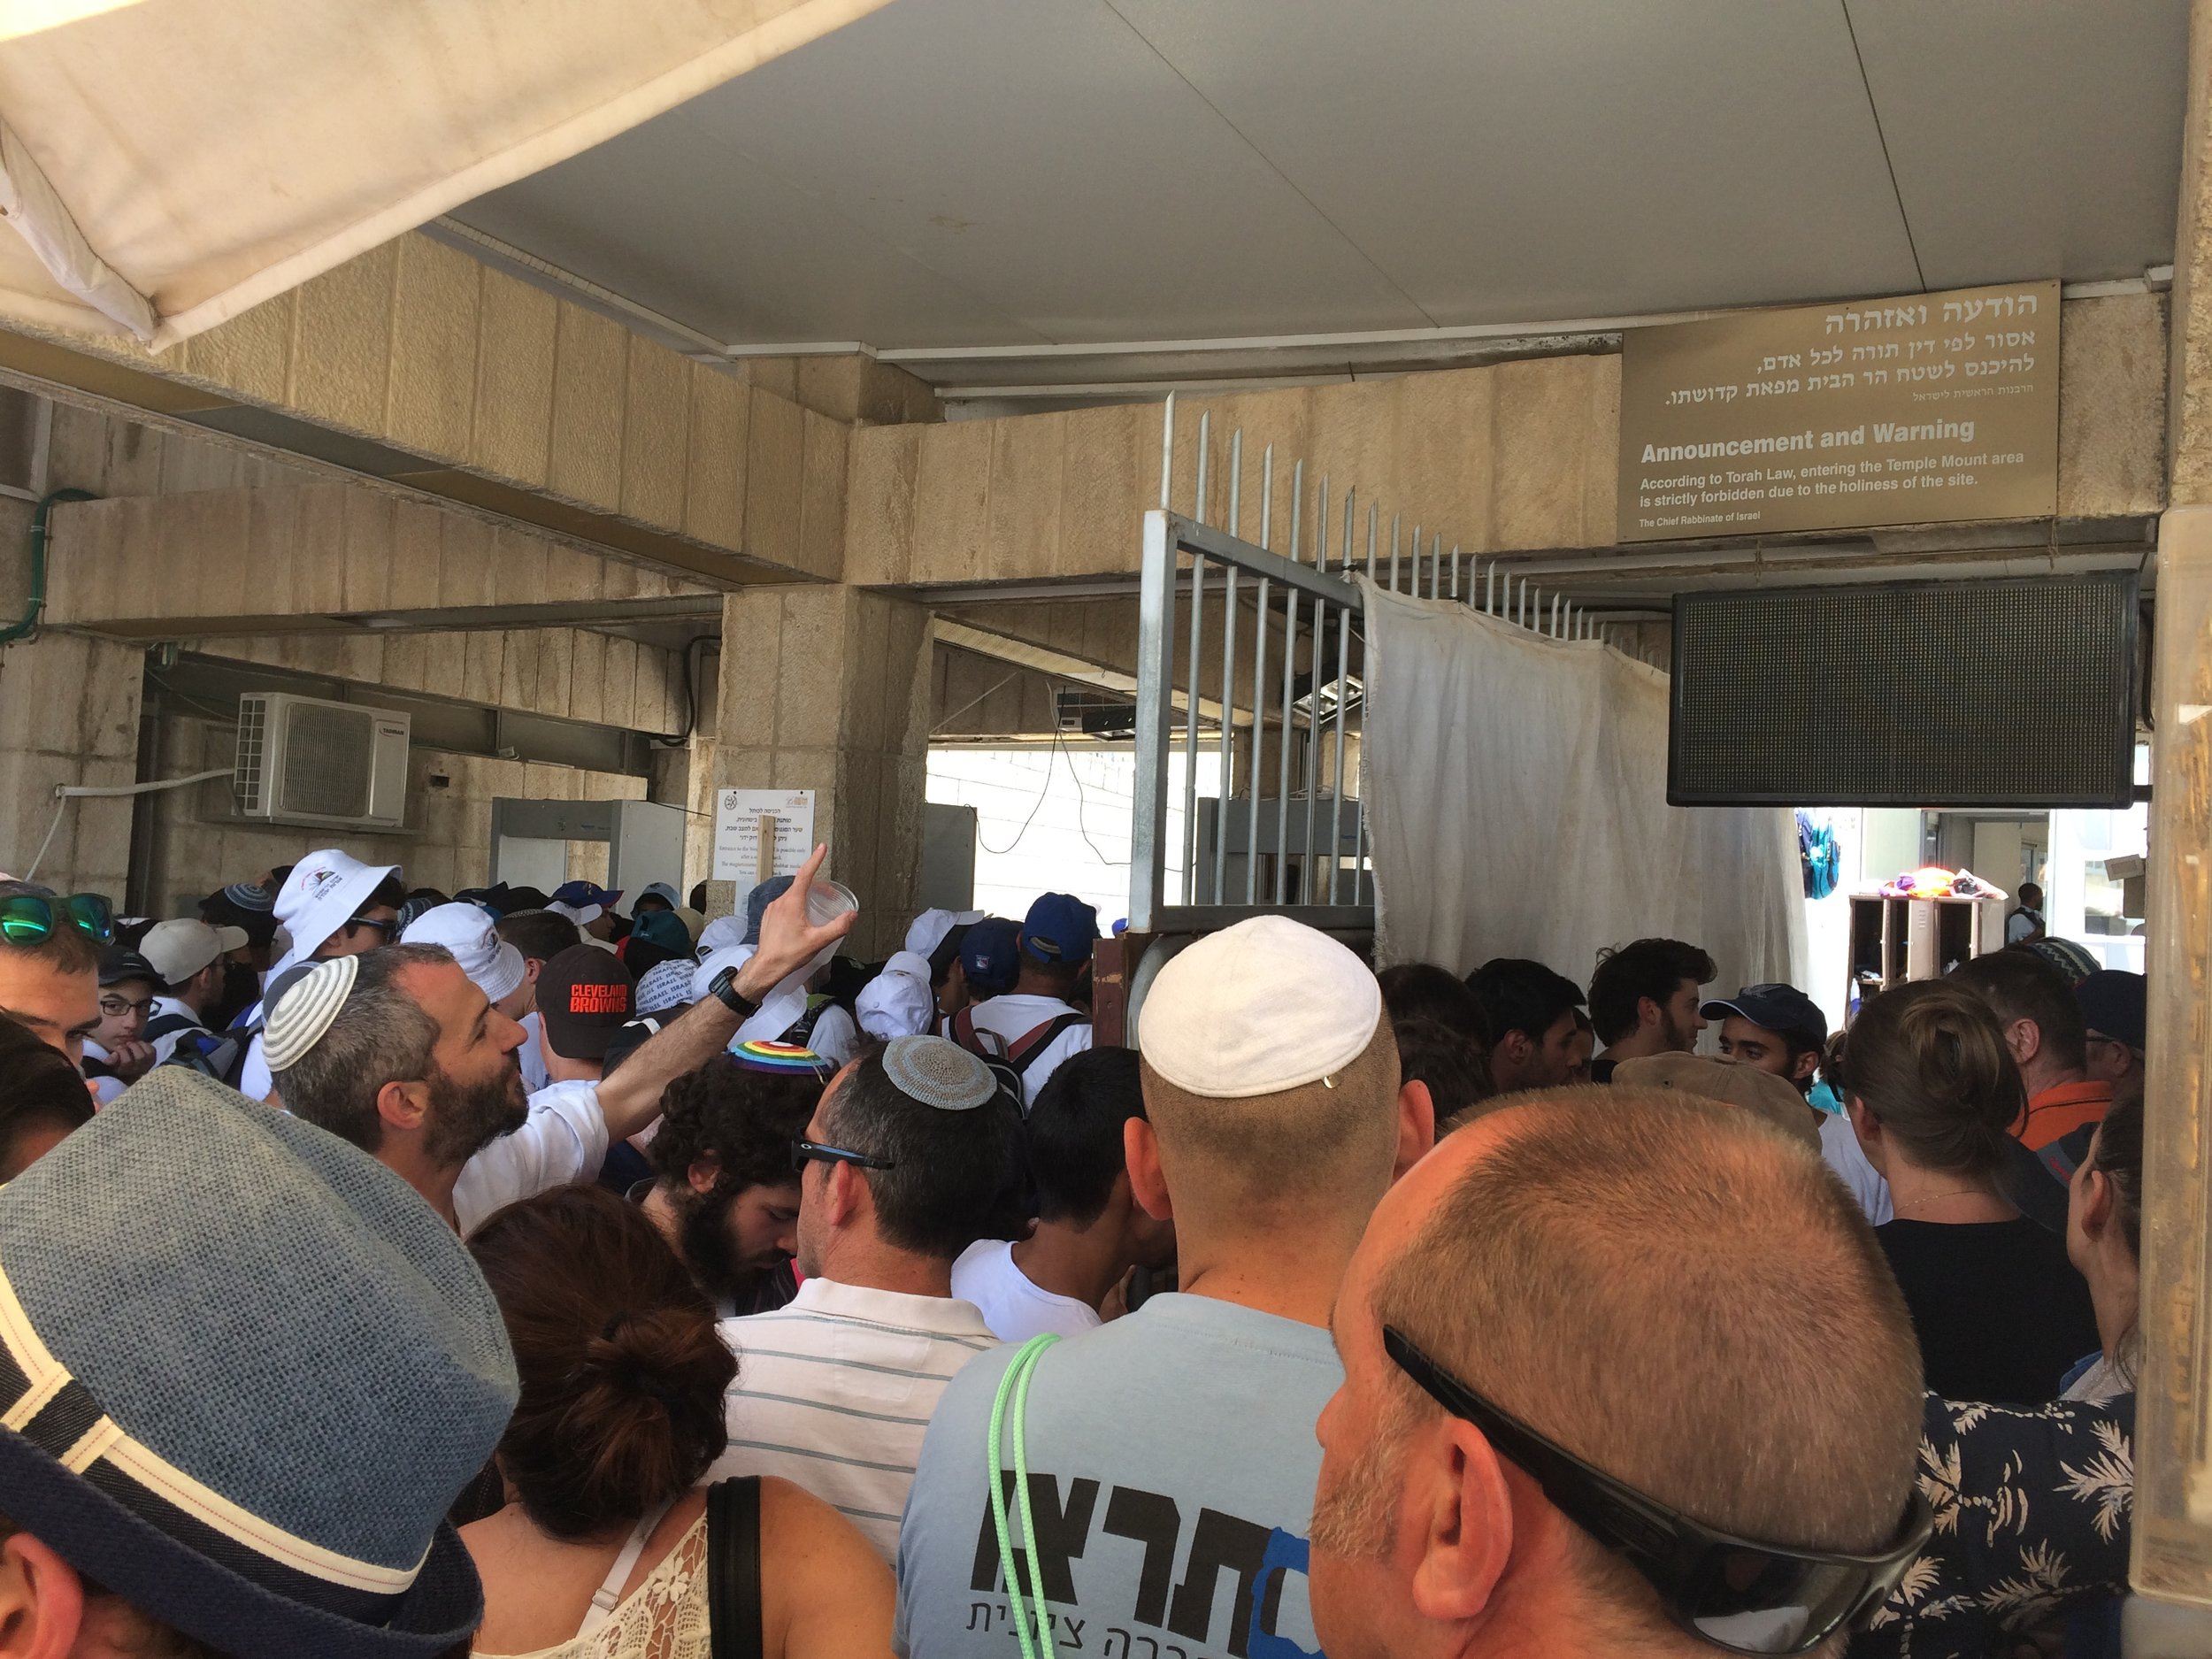 Israeli youth swarming the tourist line to get into the Noble compound on Jerusalem Day